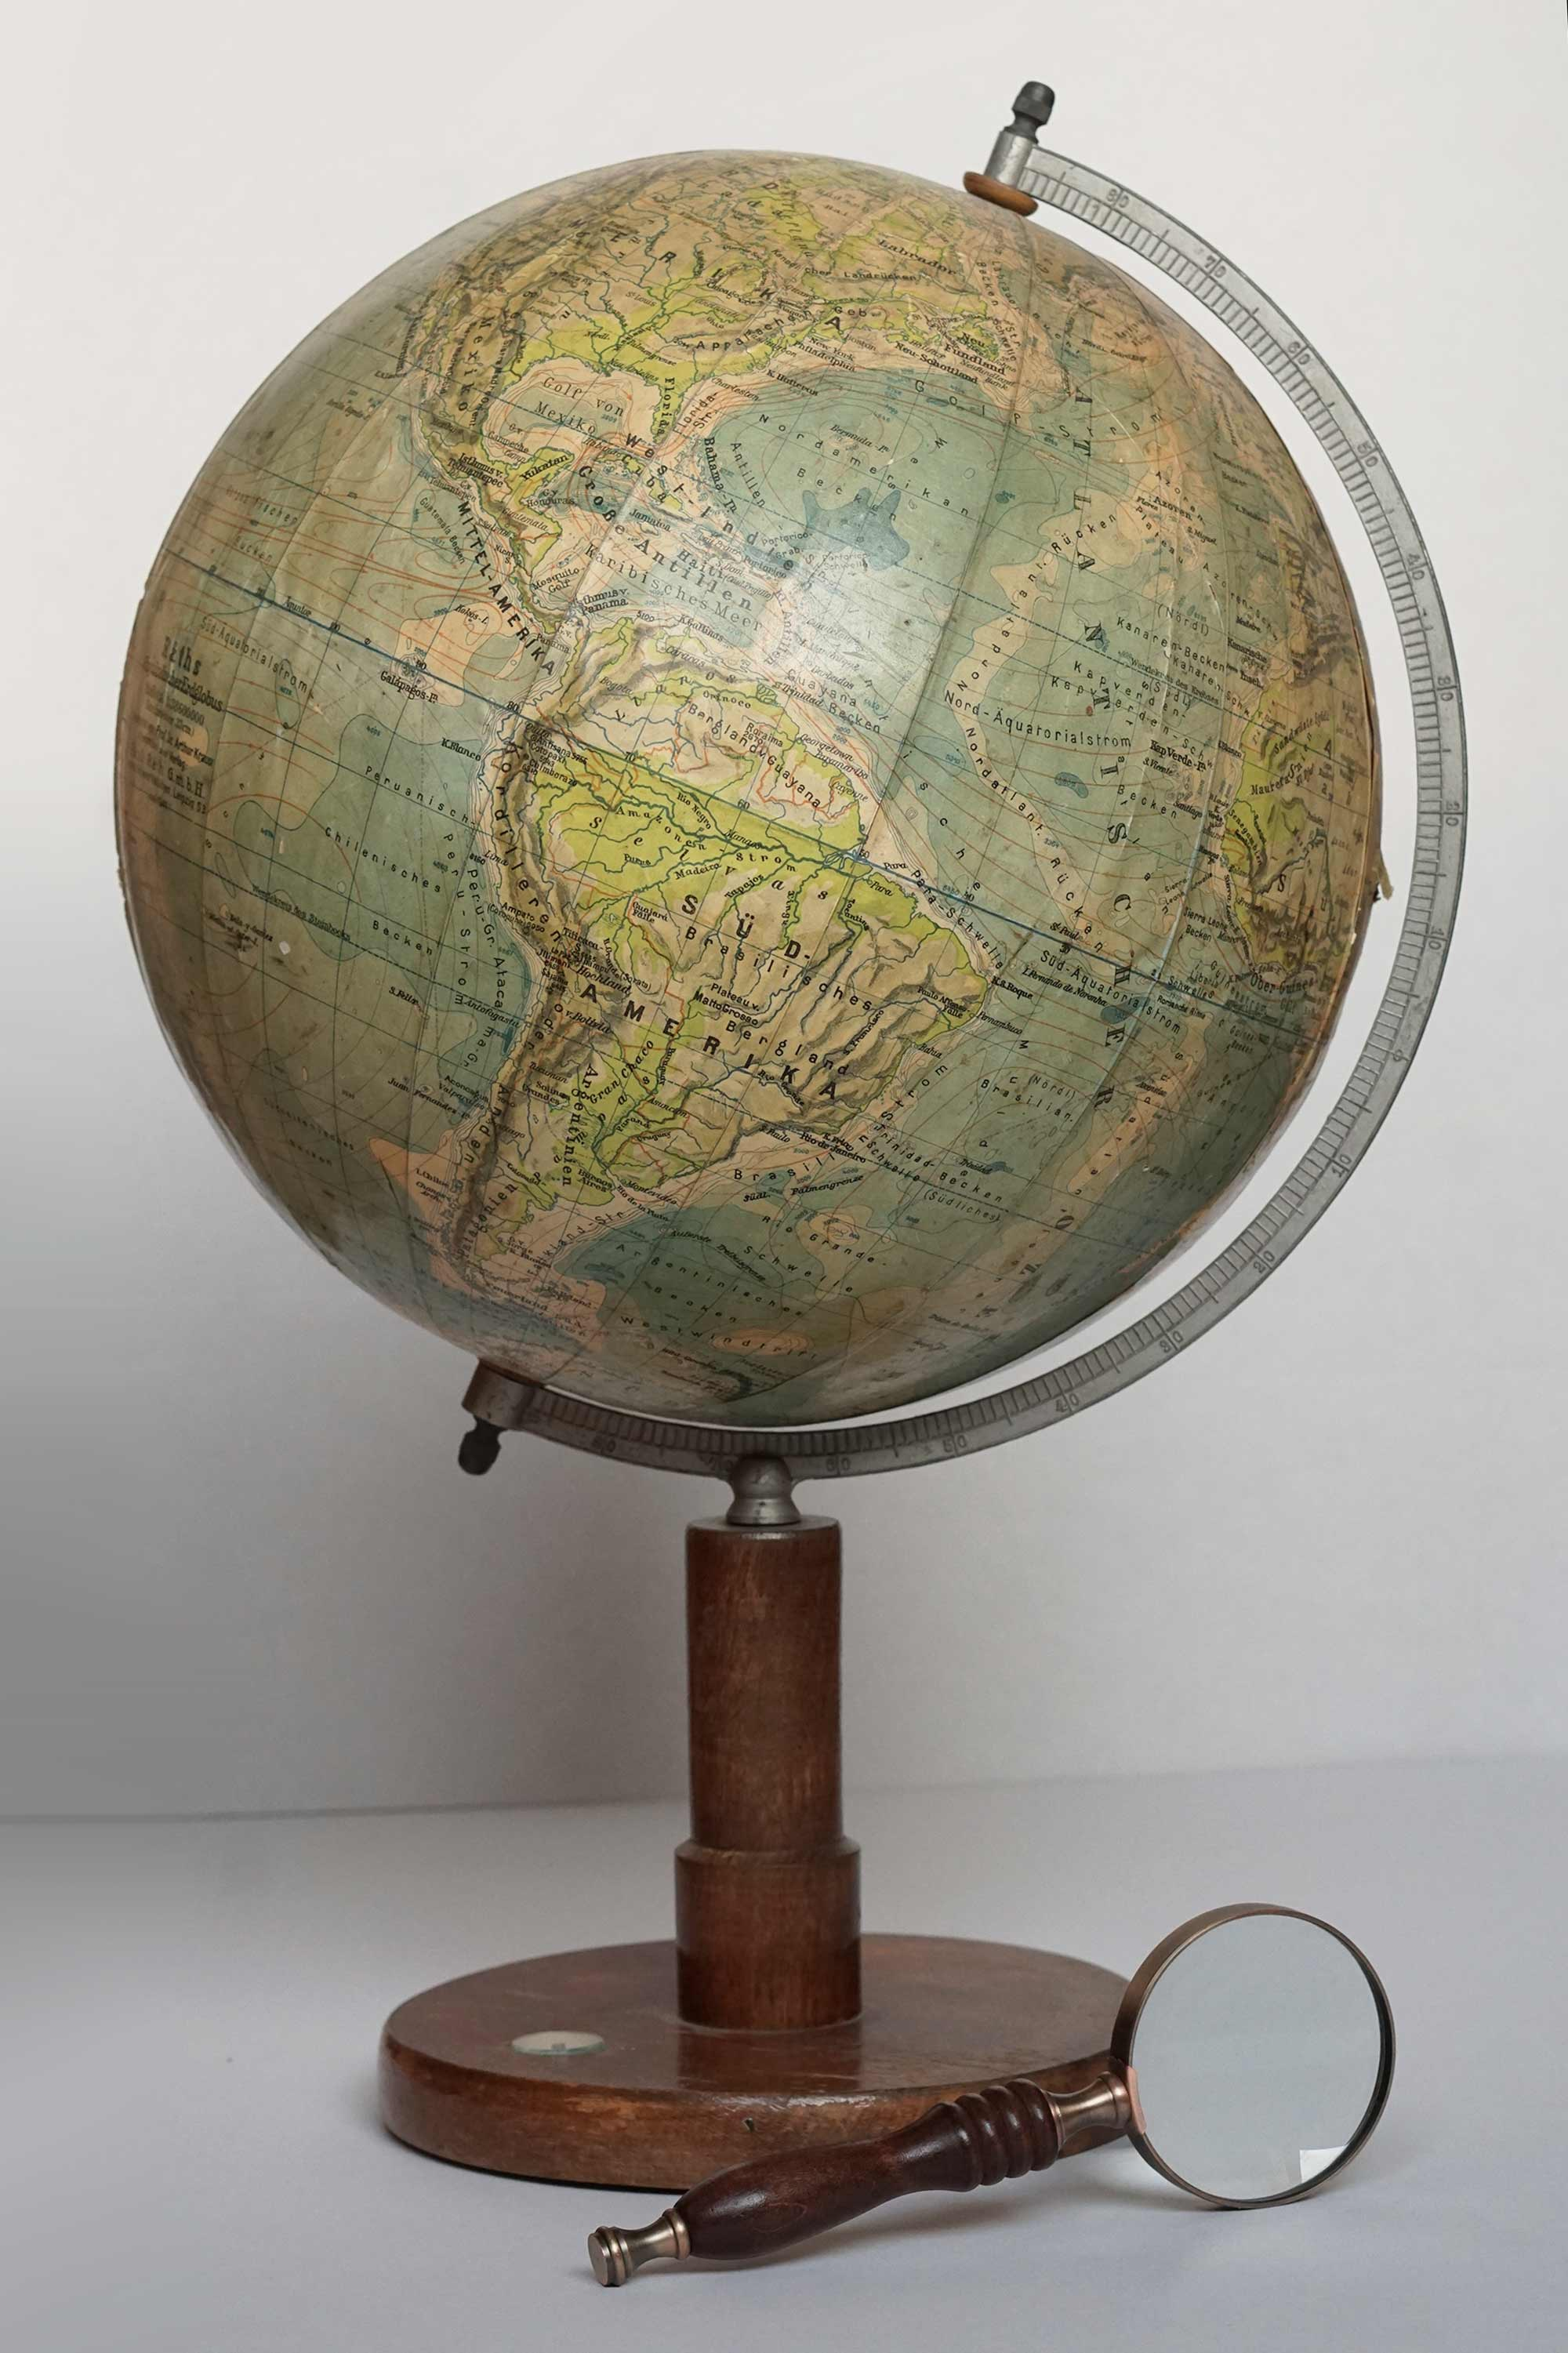 Rare WW2 physical globe by Paul Rath from 1941